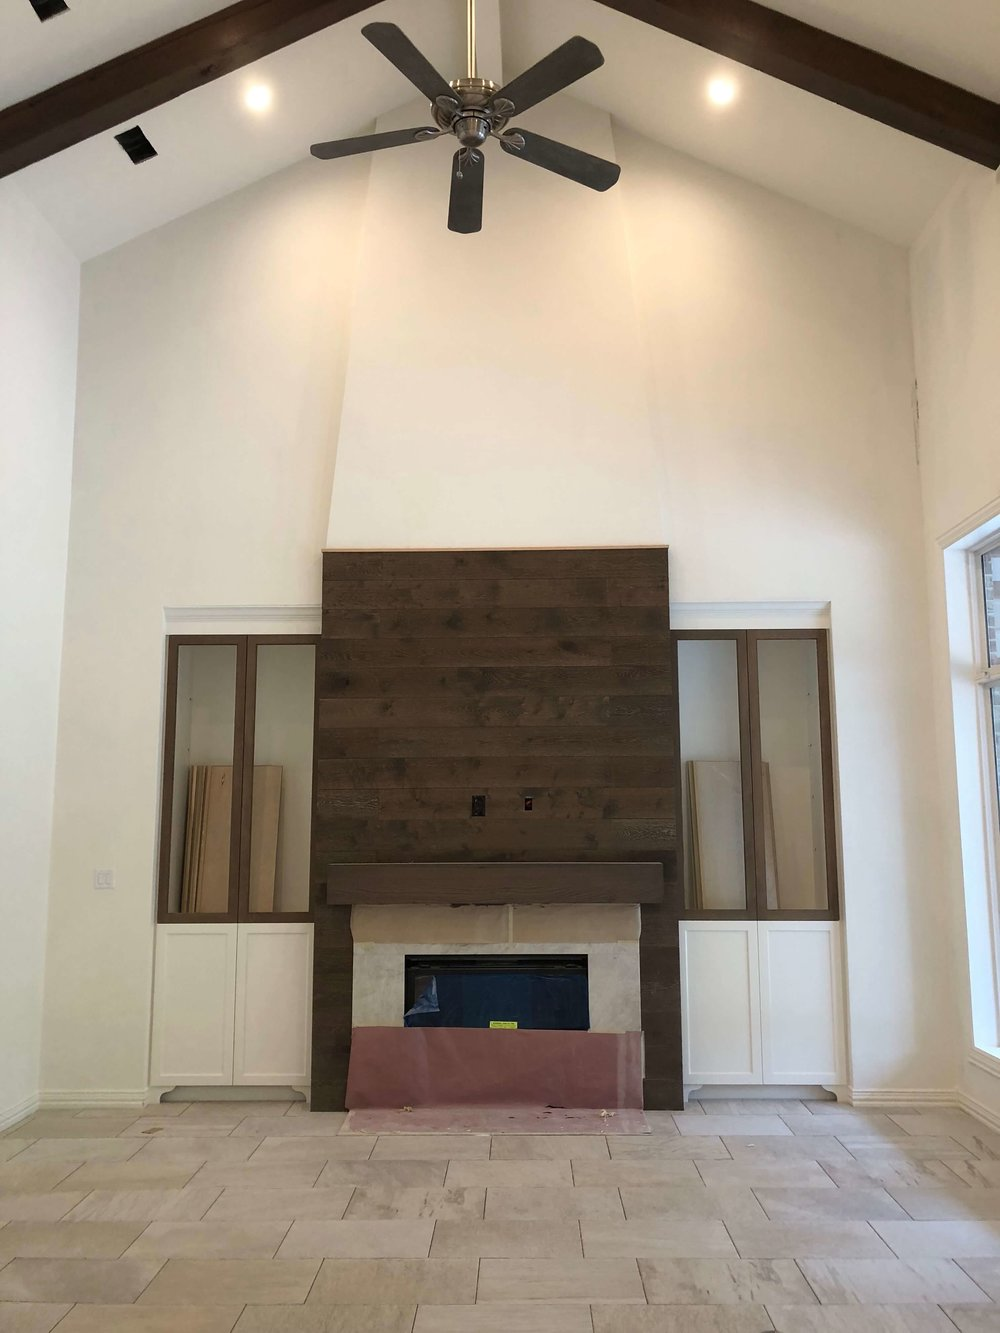 In Progress - New fireplace wall with built-ins in family room with tall ceiling